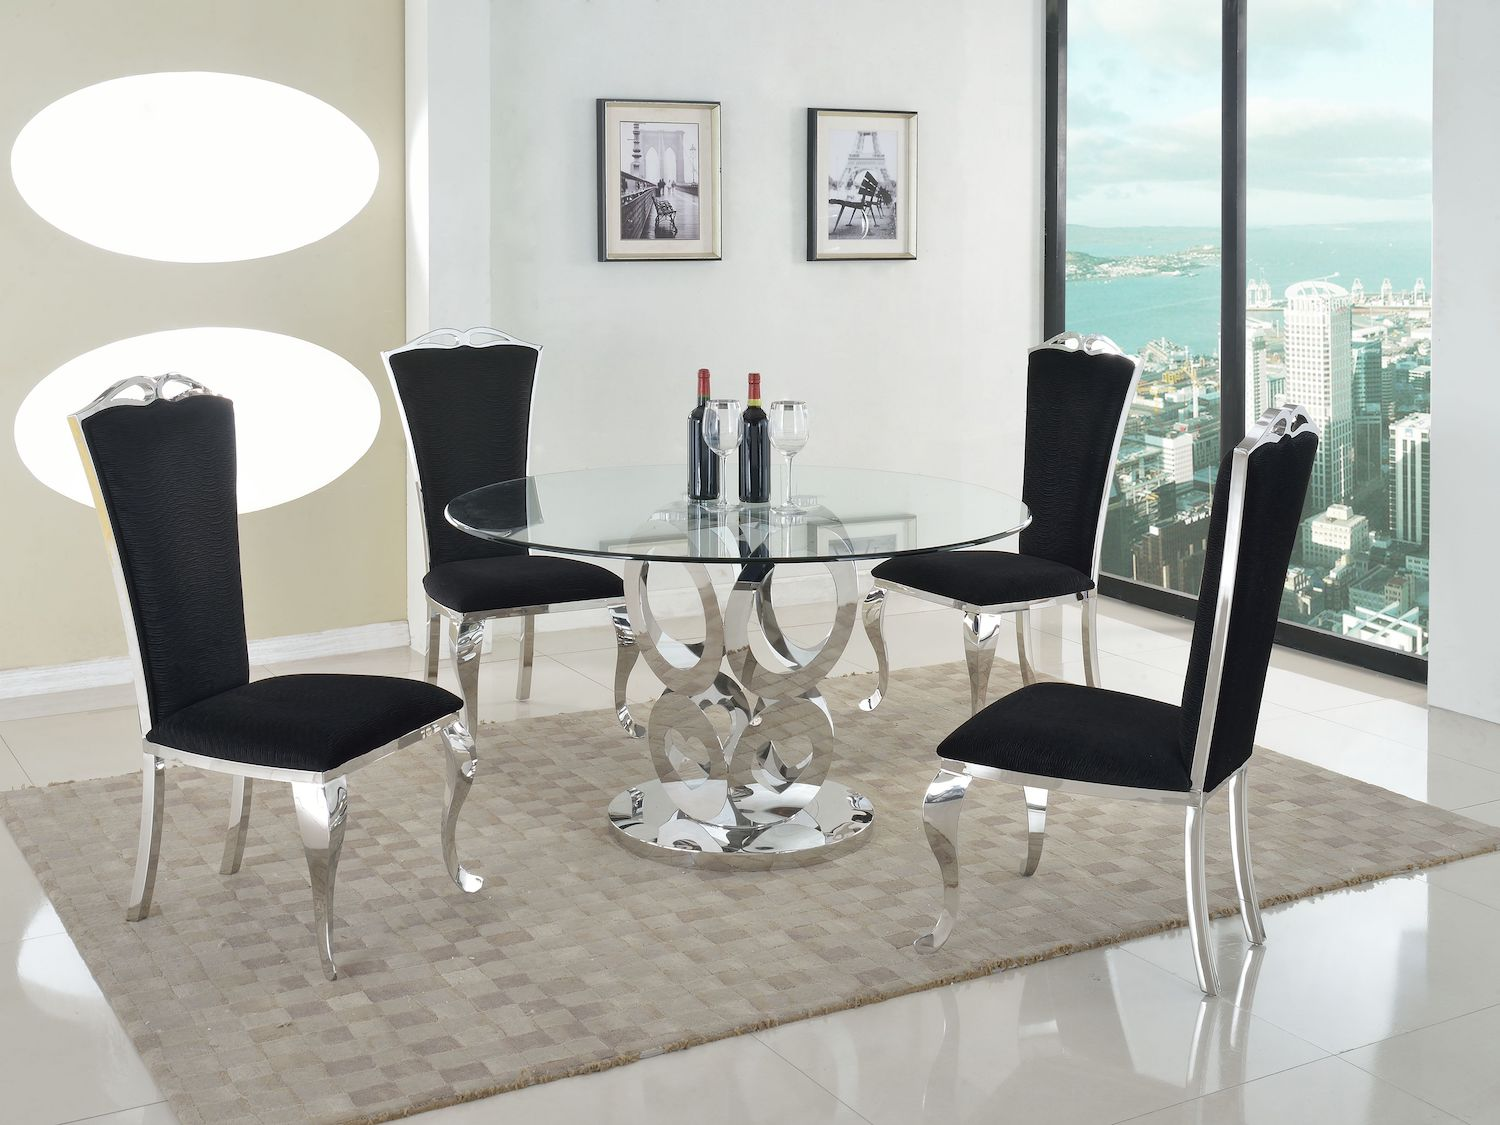 Raegan Dining Set W/Jamie Chairs, CHIN-1, Premium Dining Room Collection by Midha Furniture to Brampton, Mississauga, Etobicoke, Toronto, Scraborough, Caledon, Oakville, Markham, Ajax, Pickering, Oshawa, Richmondhill, Kitchener, Hamilton and GTA area